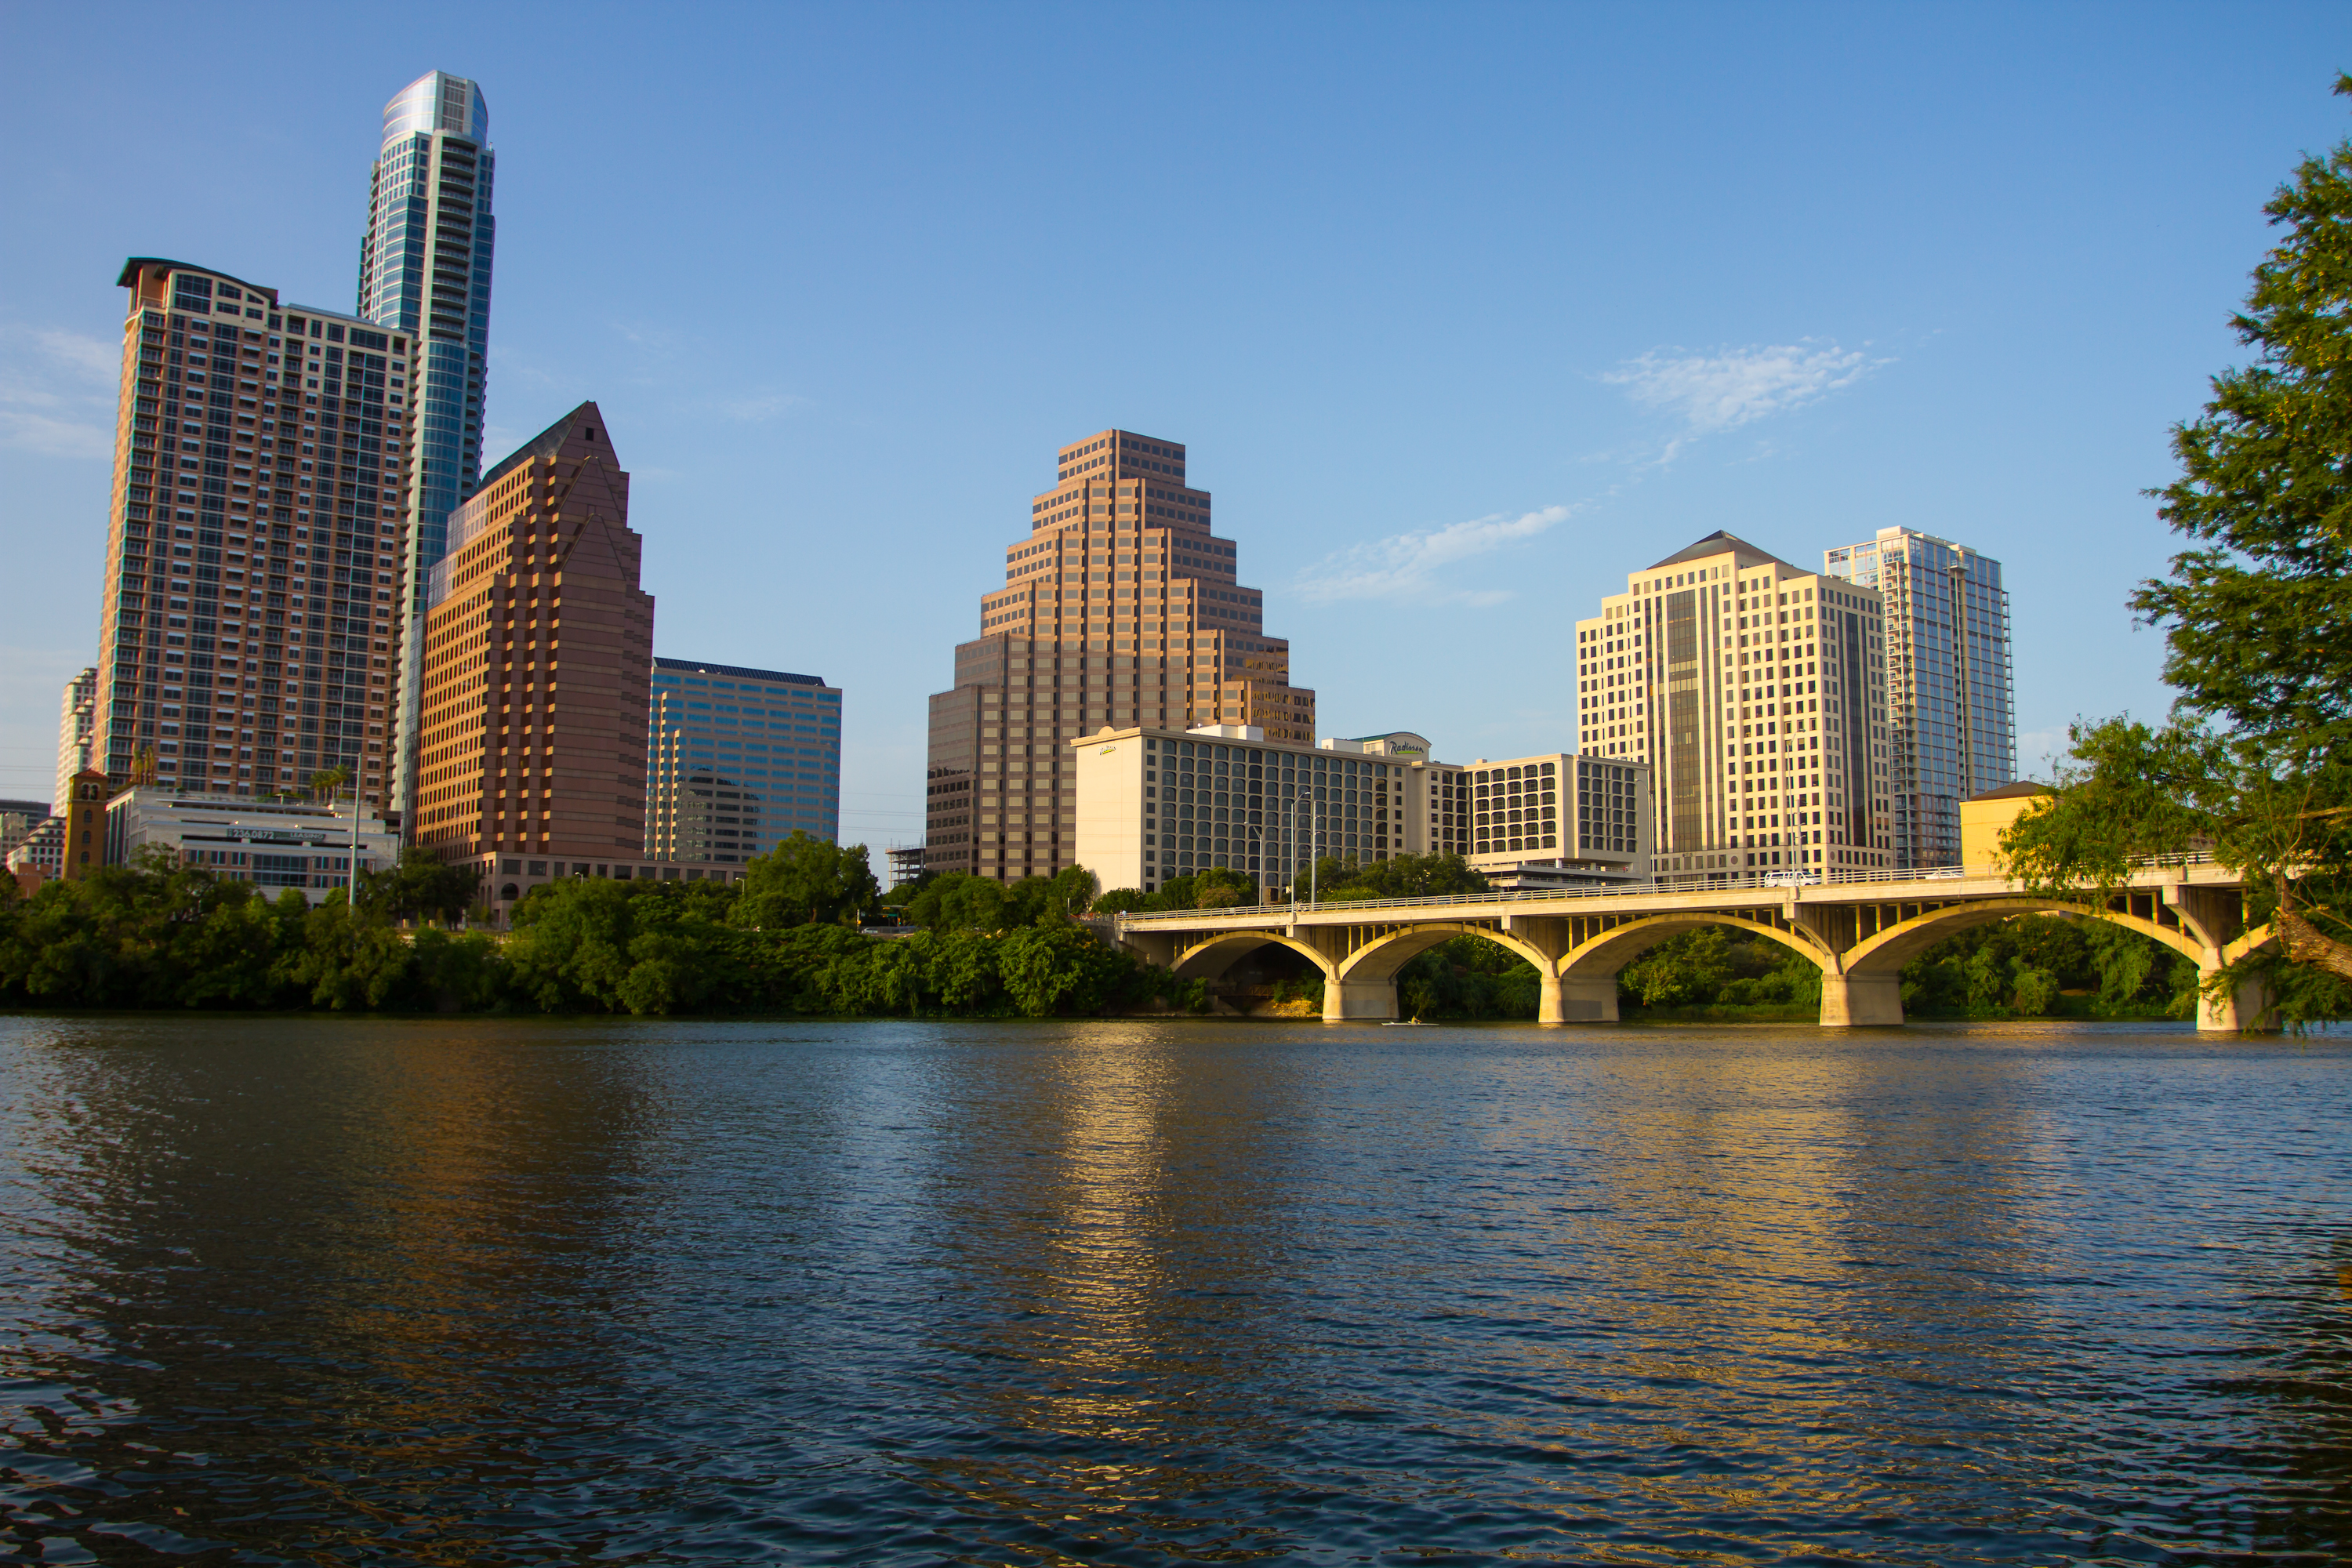 Photo of Austin city skyline including river and bridge